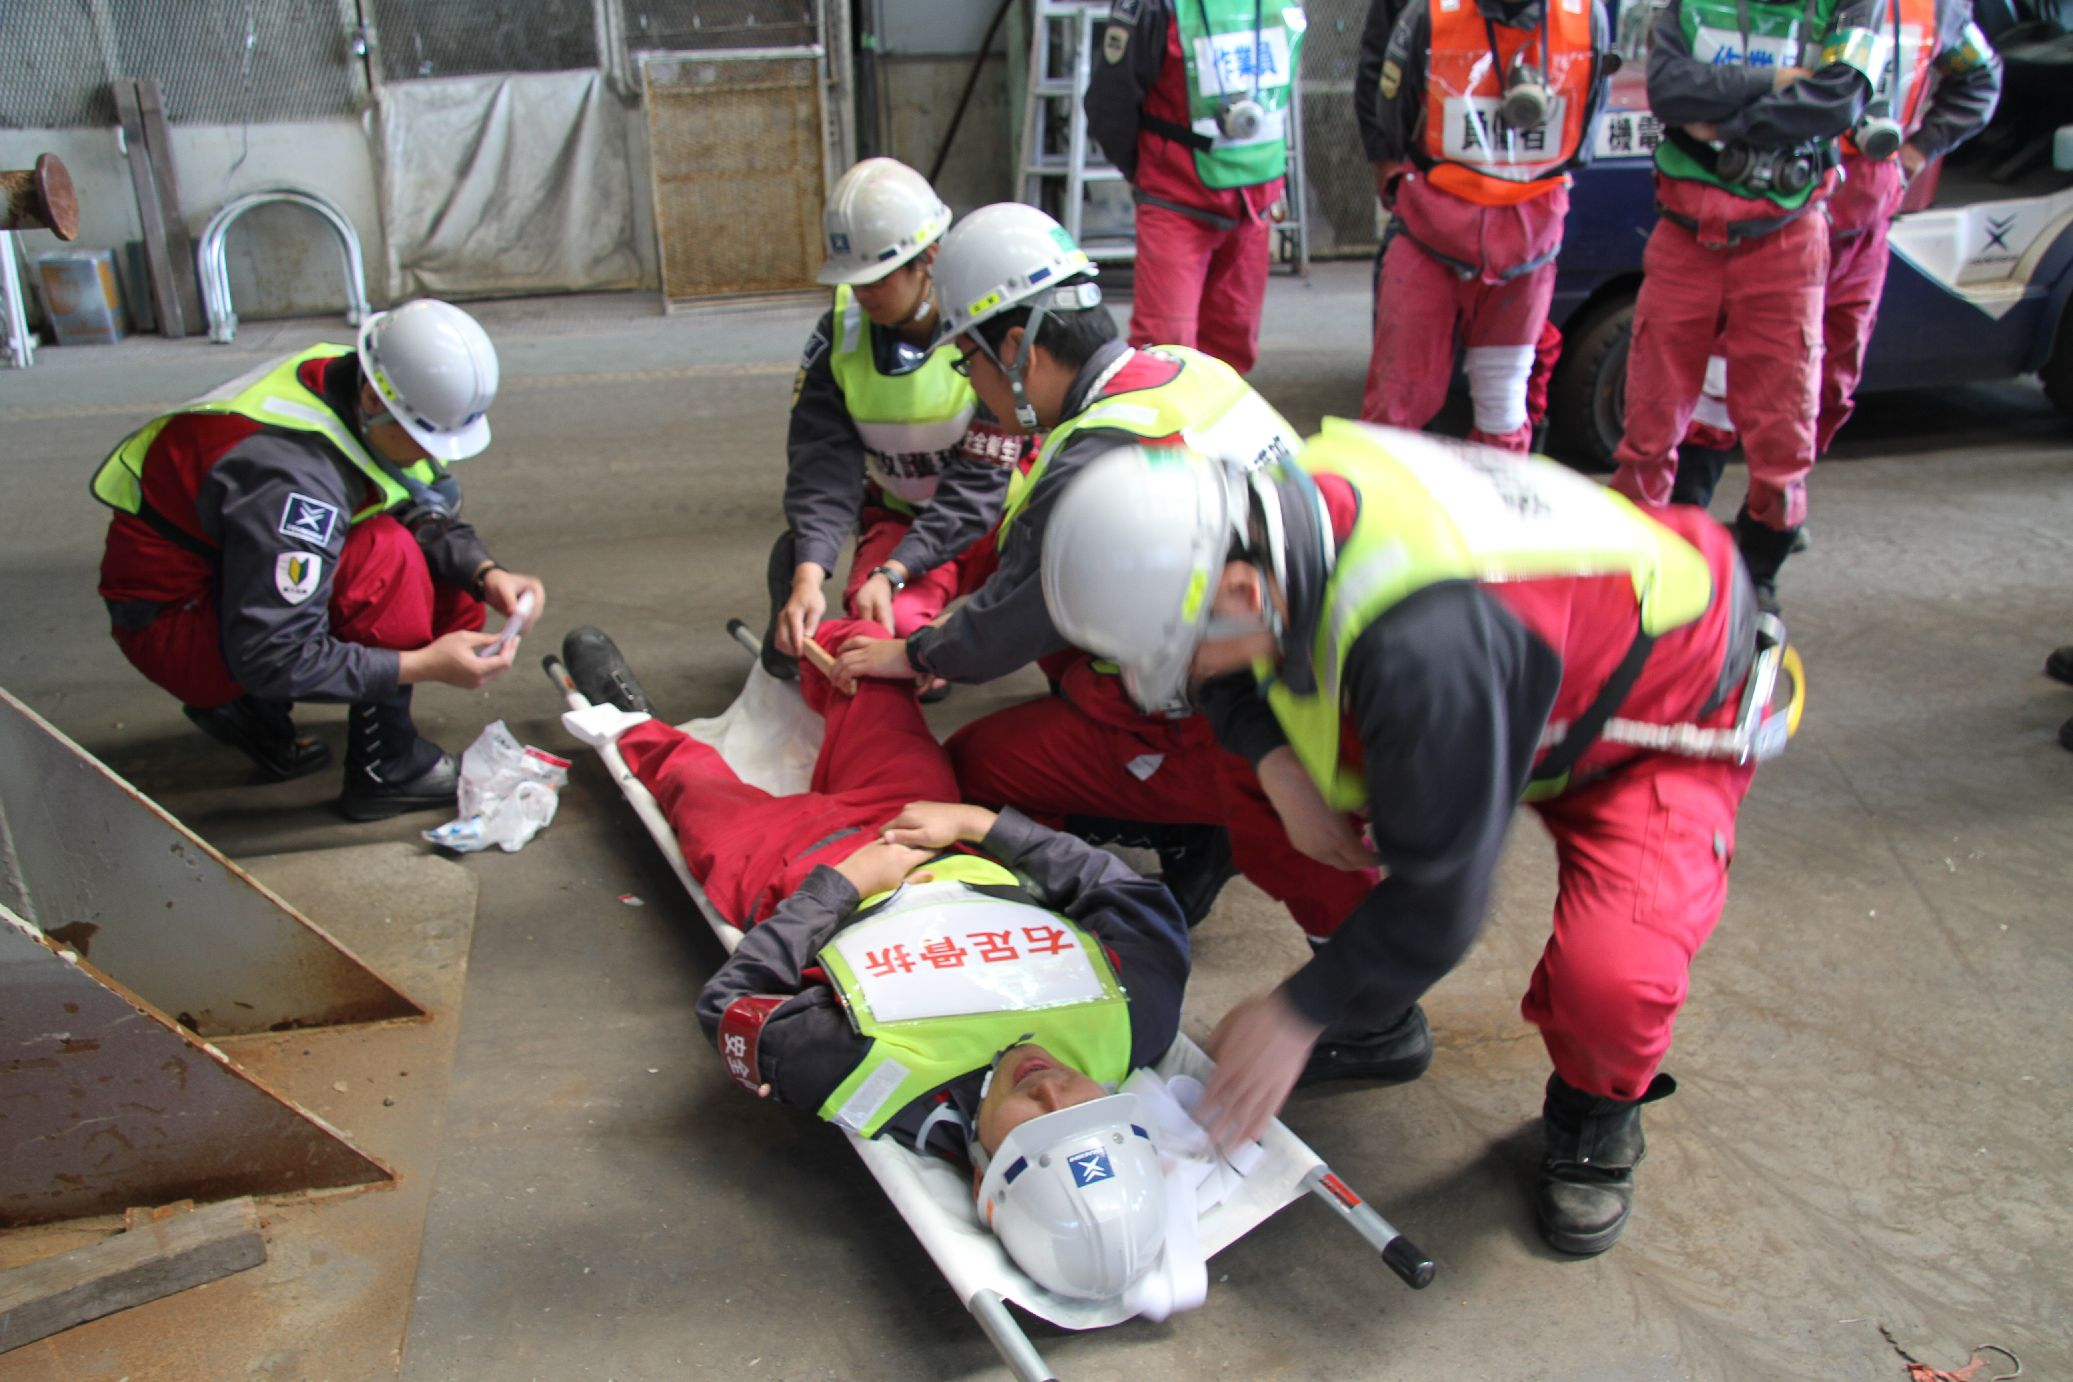 Carrying a person in need of help with a stretcher